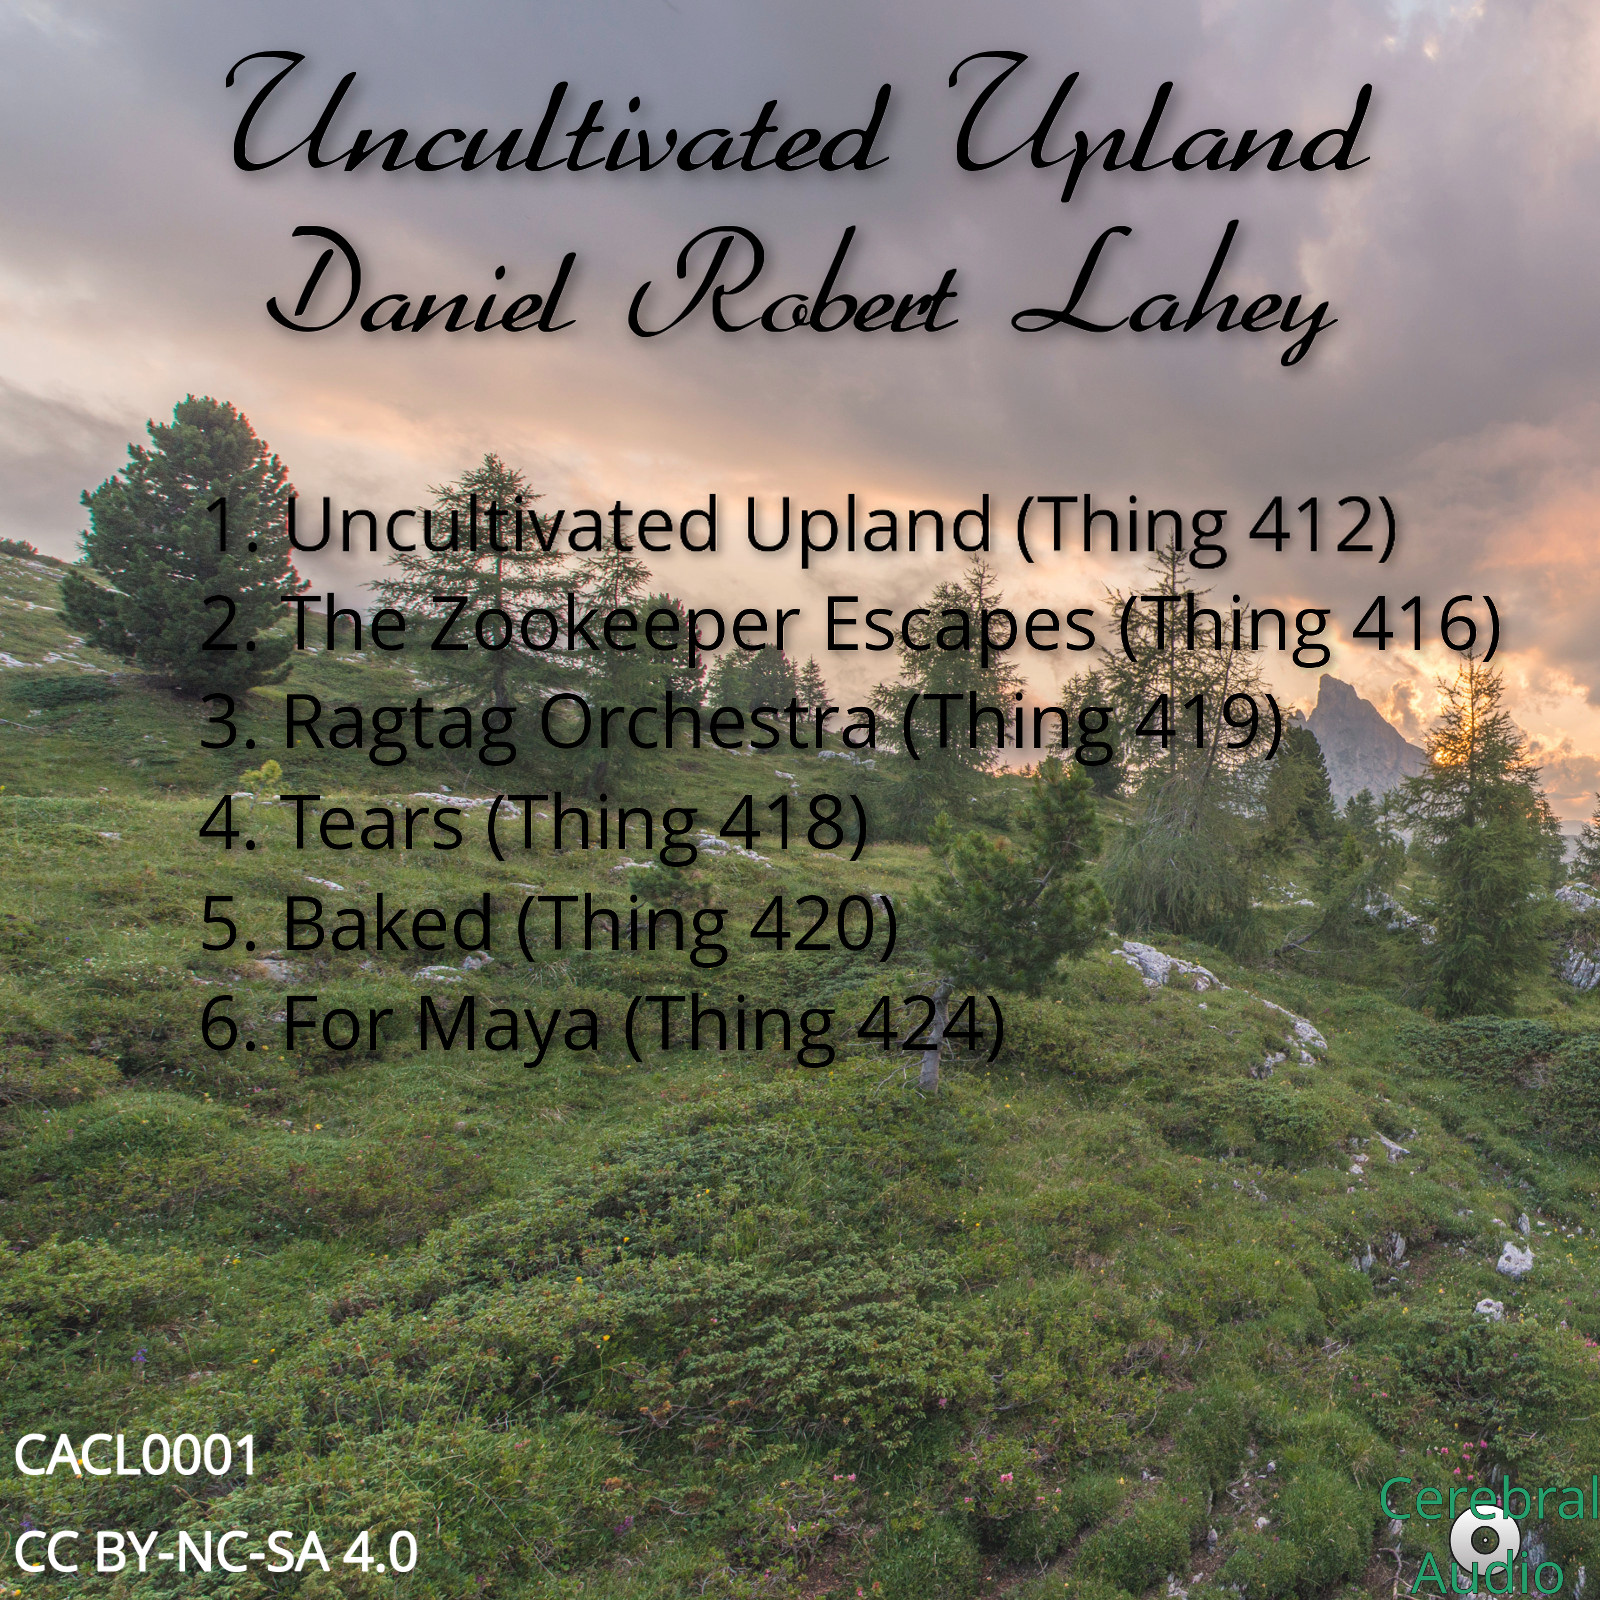 Uncultivated Upland